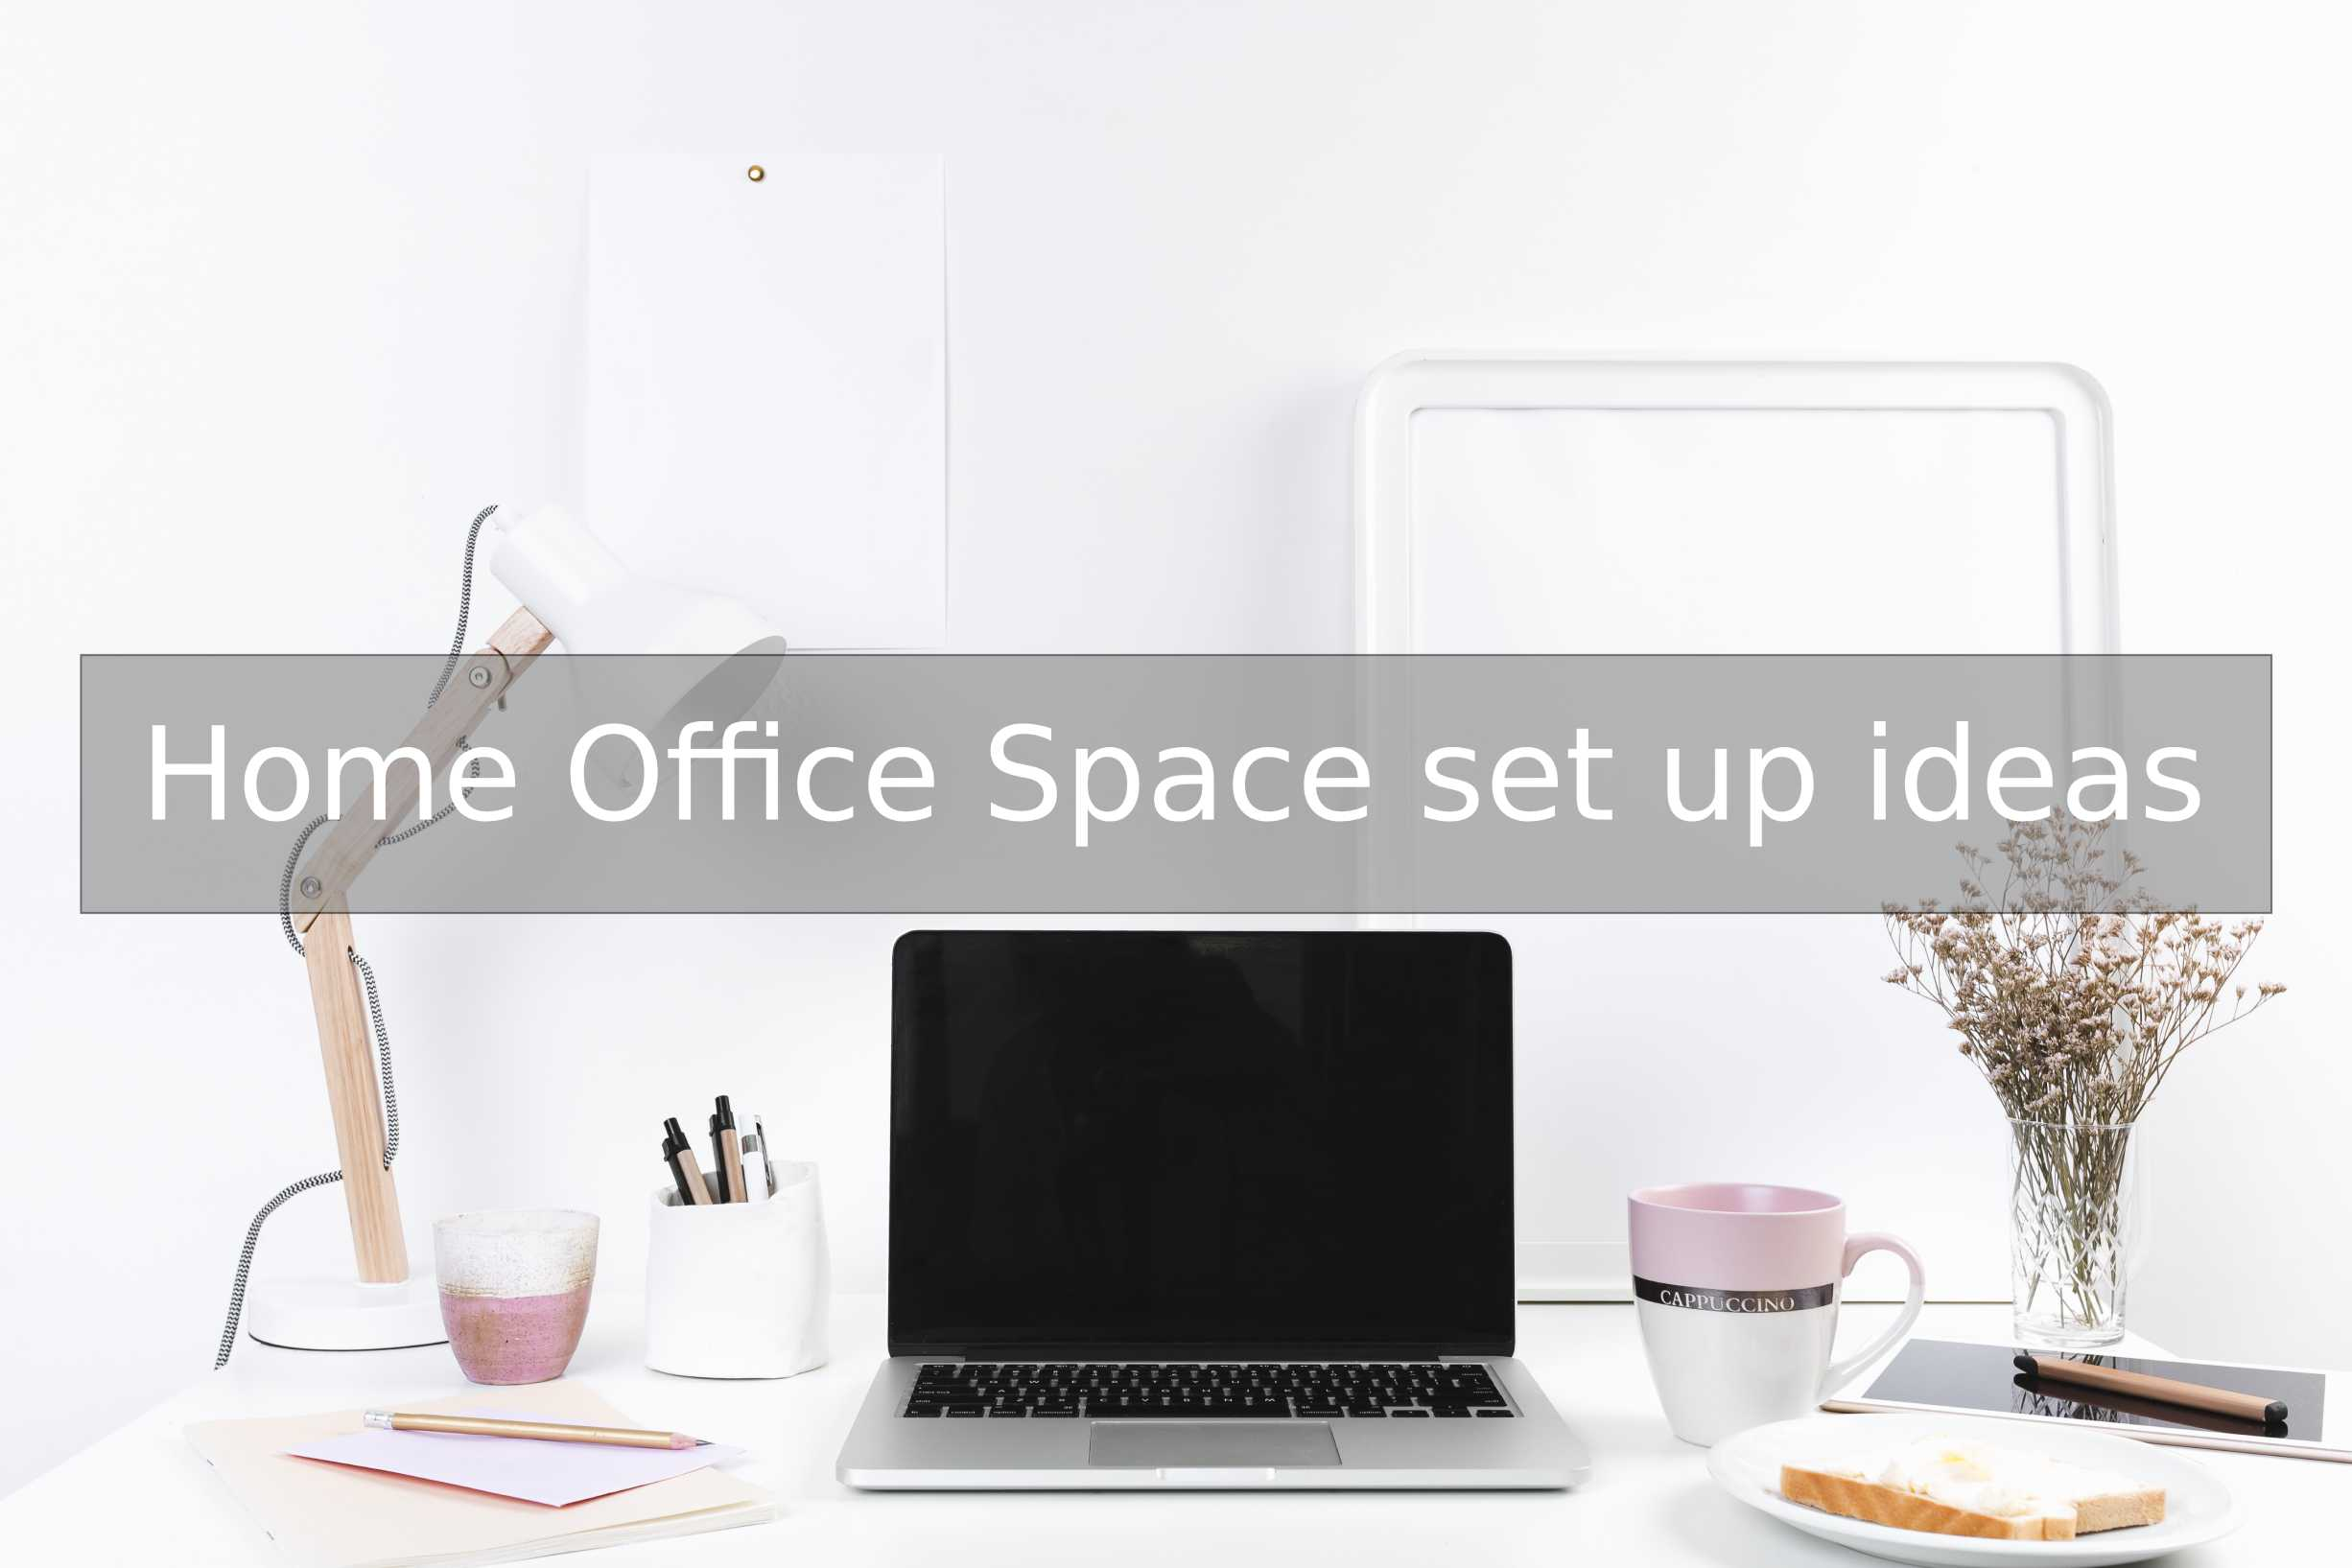 Home Office Space set up ideas for small house | Flats in Pallavaram